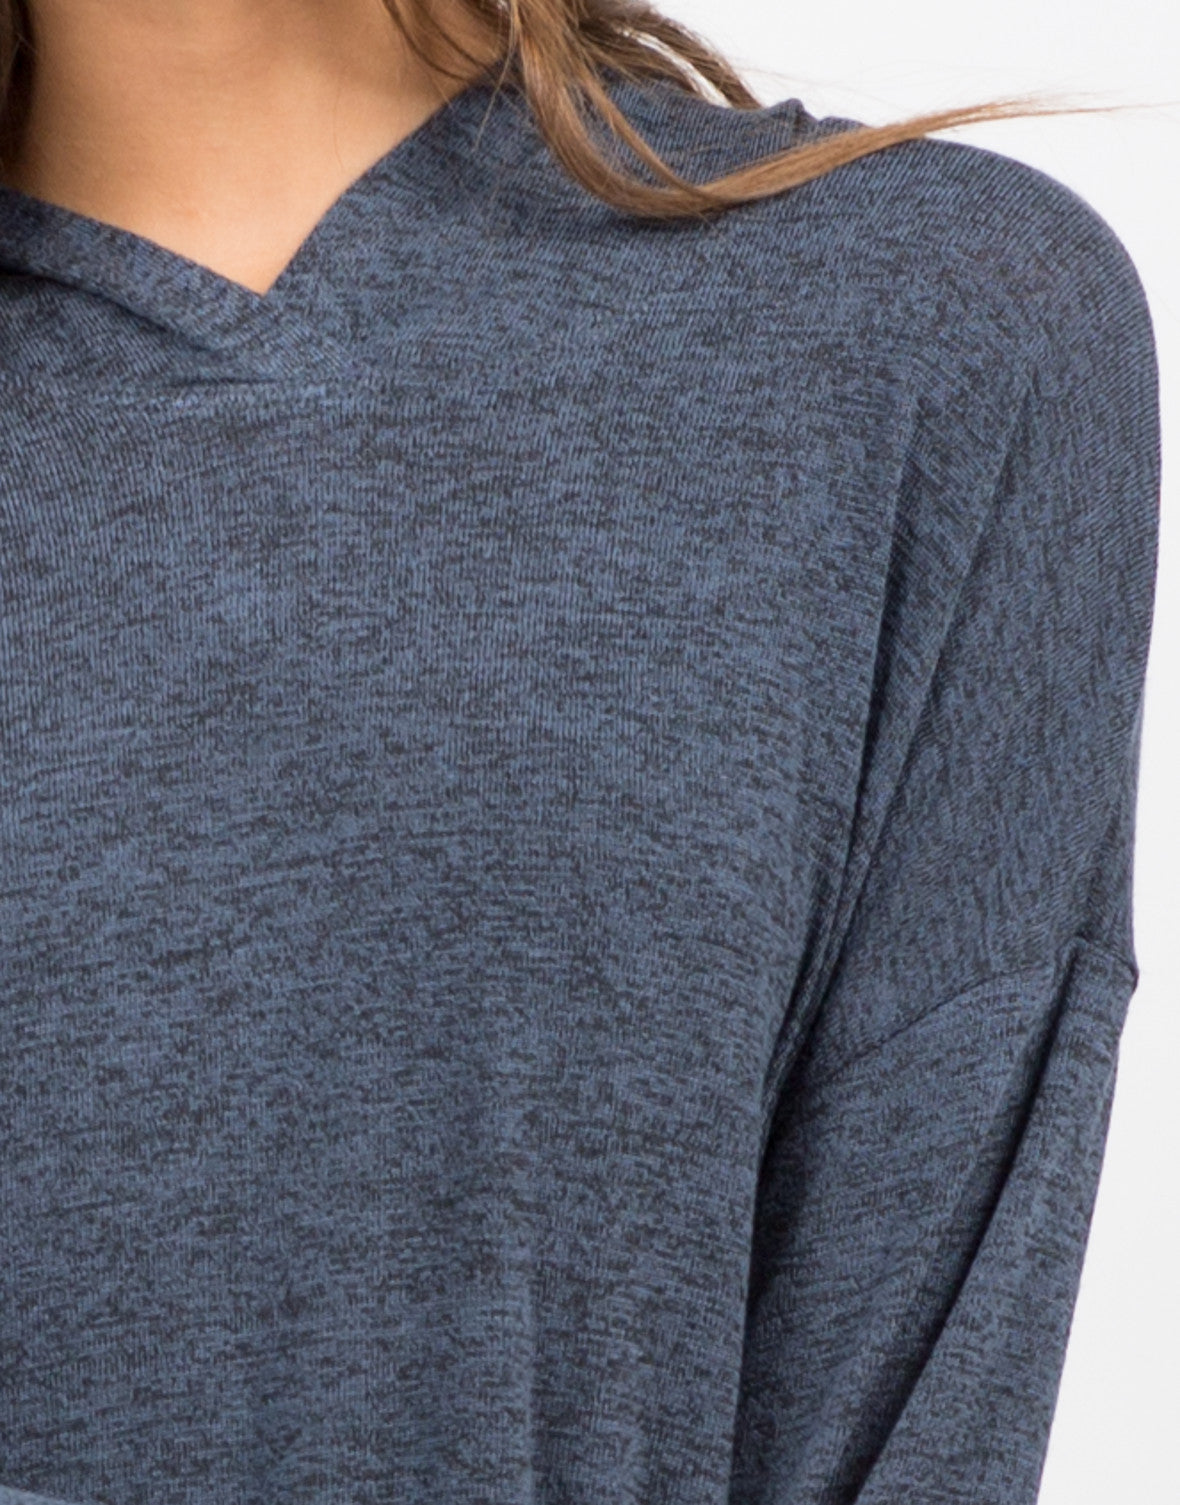 Detail of Long Sleeve Hooded Top